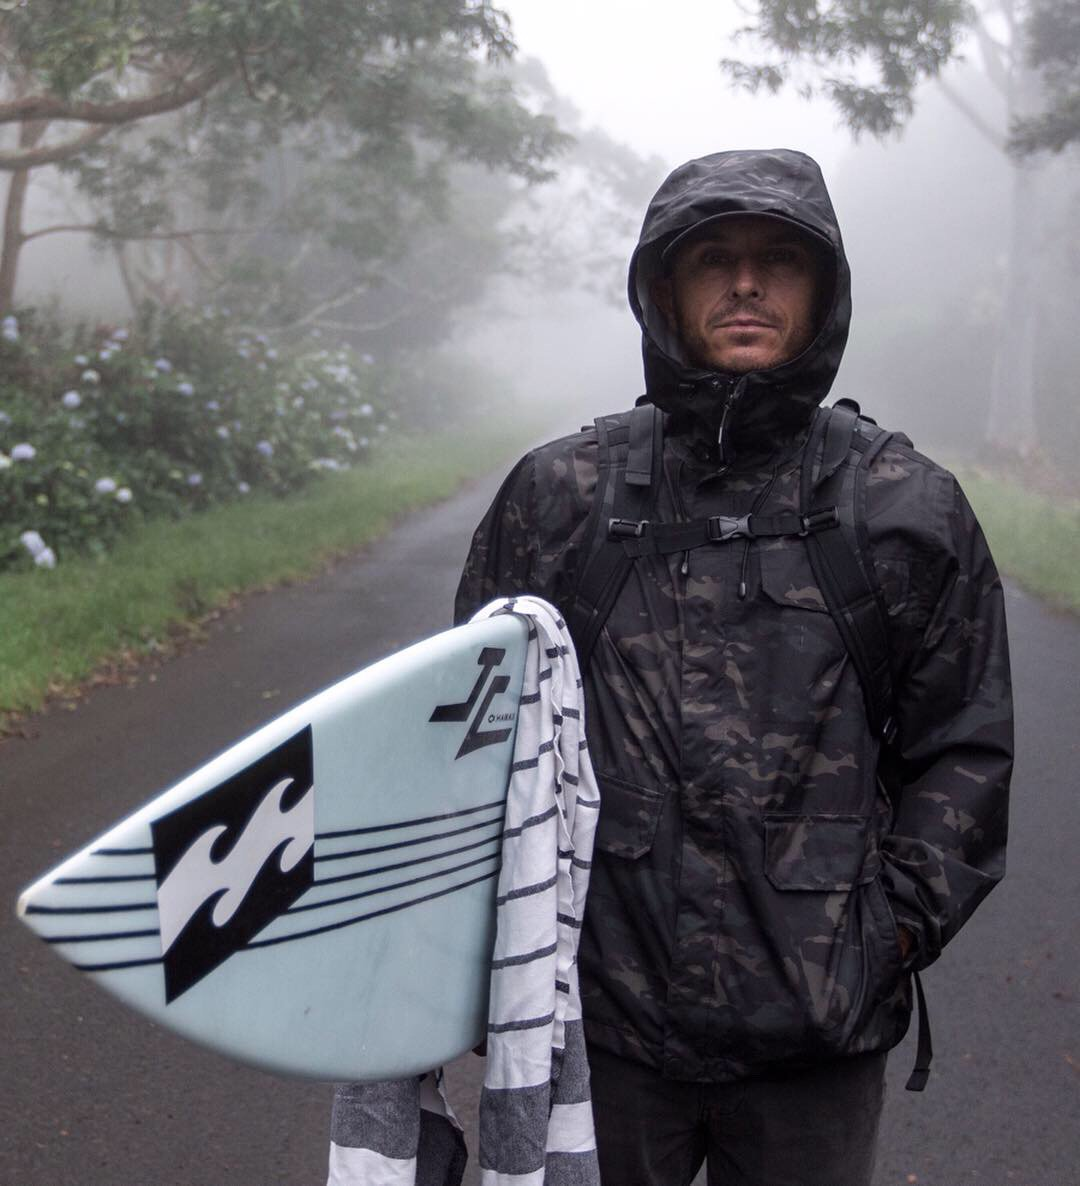 Rain or shine, gray skies or blue - Shane Dorian is always on the hunt.  Shop the Adventure Division x MultiCam® Black collection » http://bit.ly/2G98a7I   #BillabongAdventureDivision